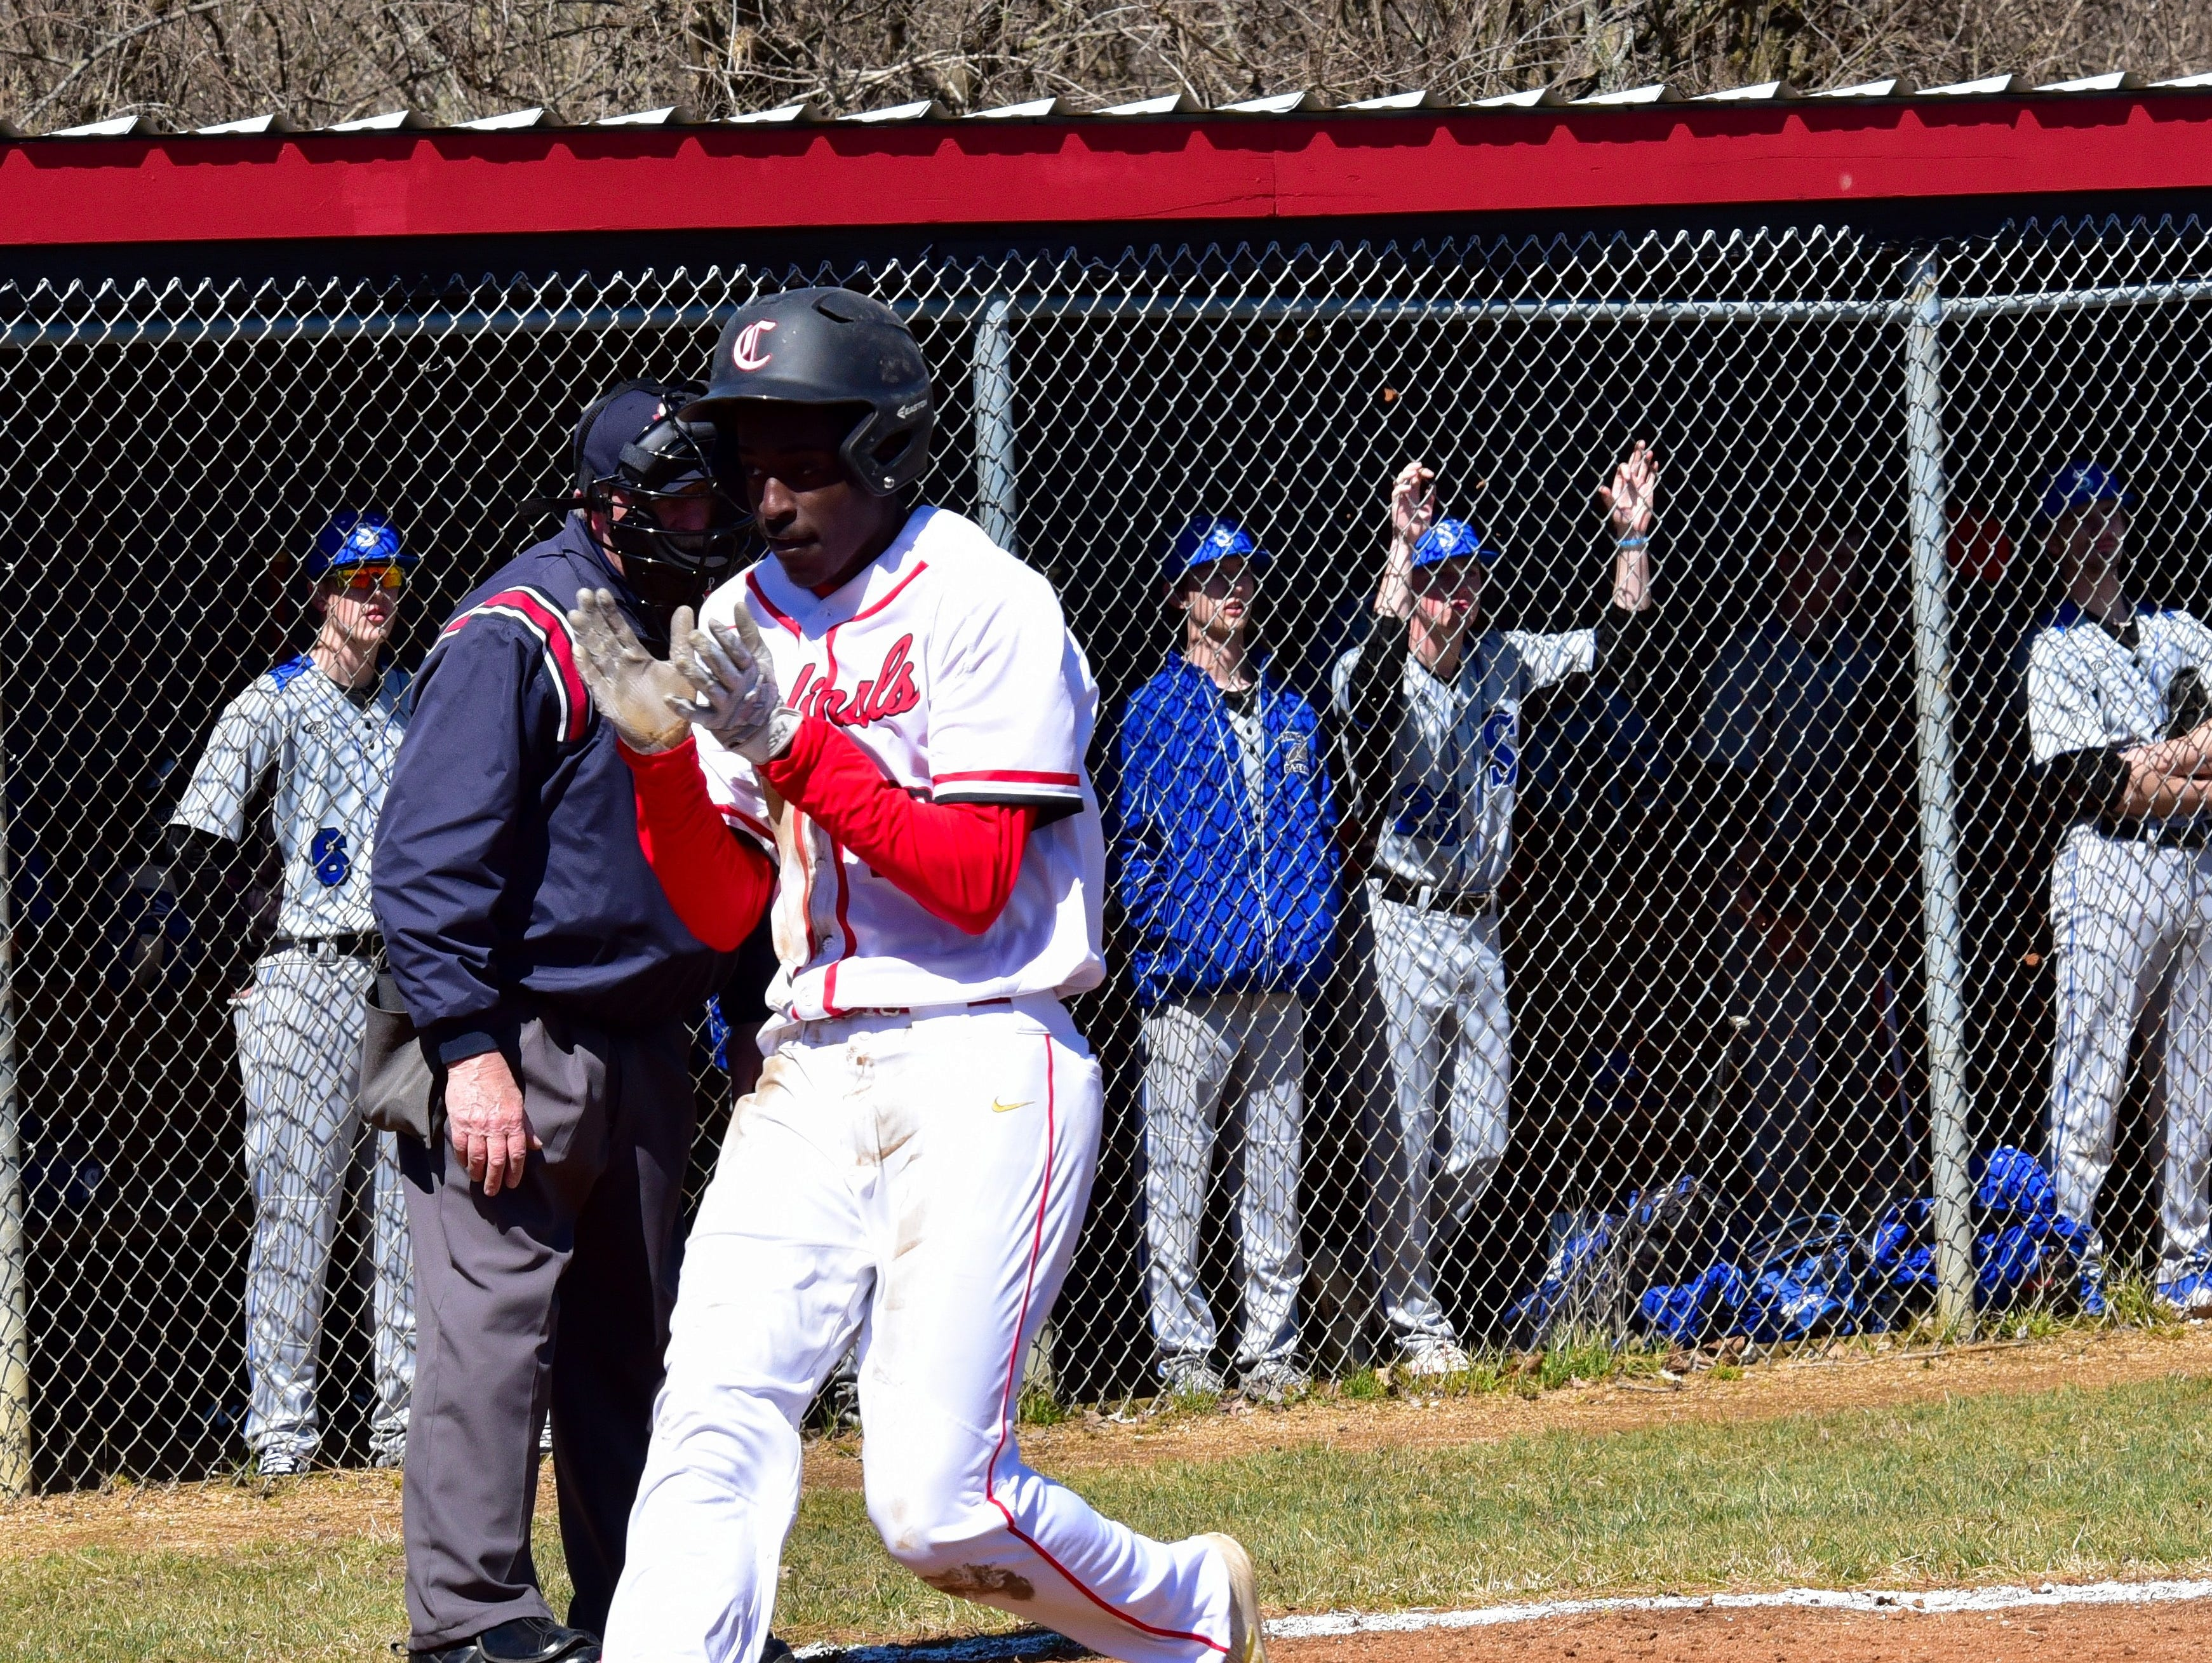 Colerain's Christian Robinson plates the first run of the season for the Cardinals at Colerain High School, March 23, 2019.